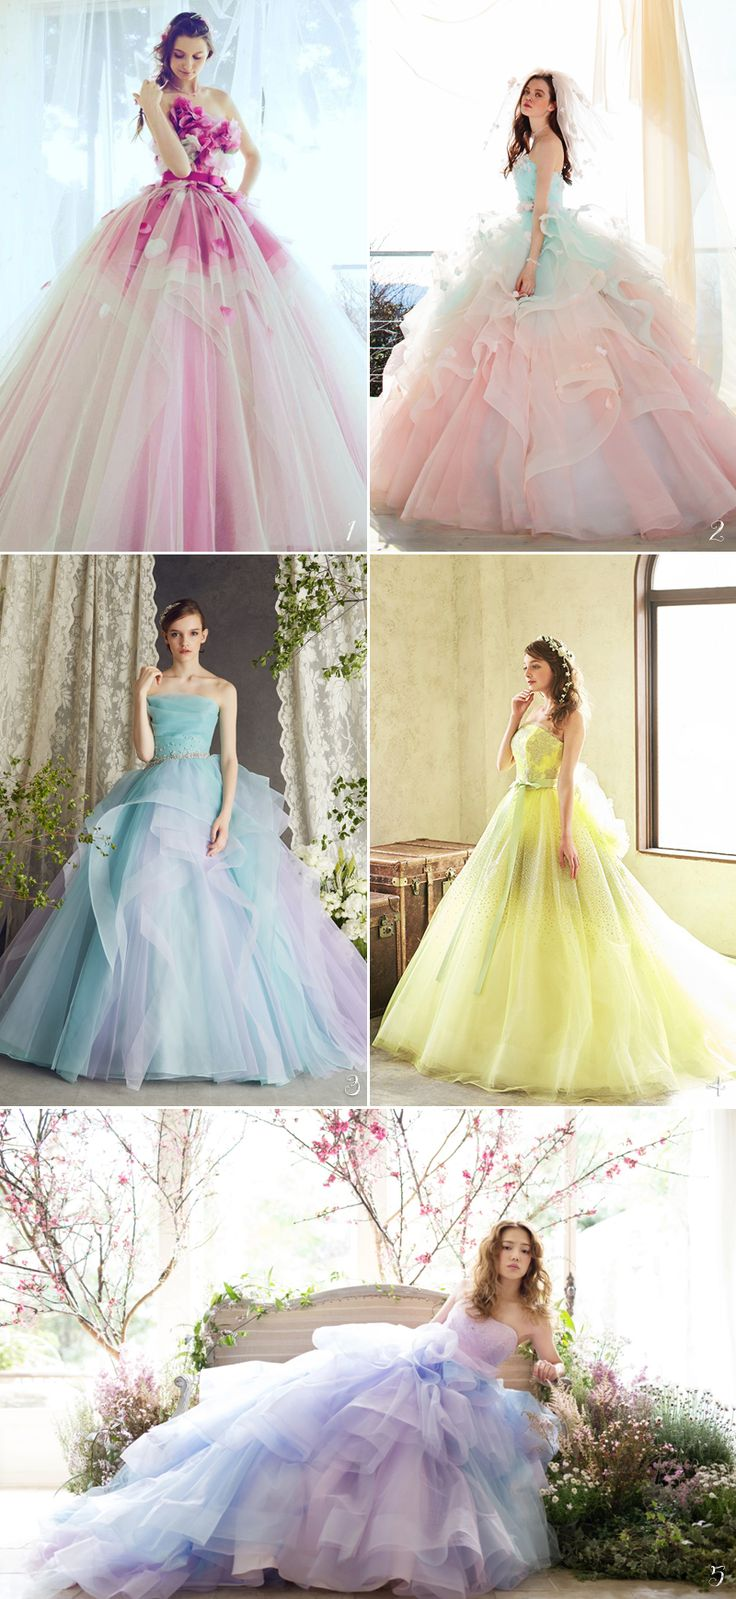 No princess is complete without her magical gown! Achieving the fairy tale bridal look of your dreams is only possible when you find the perfect dress. If you are ready to step out of your comfort zone and consider a colored gown, we've got the best picks for you. Get ready to fall in love and twirl around in one of our handpicked magical gowns below!